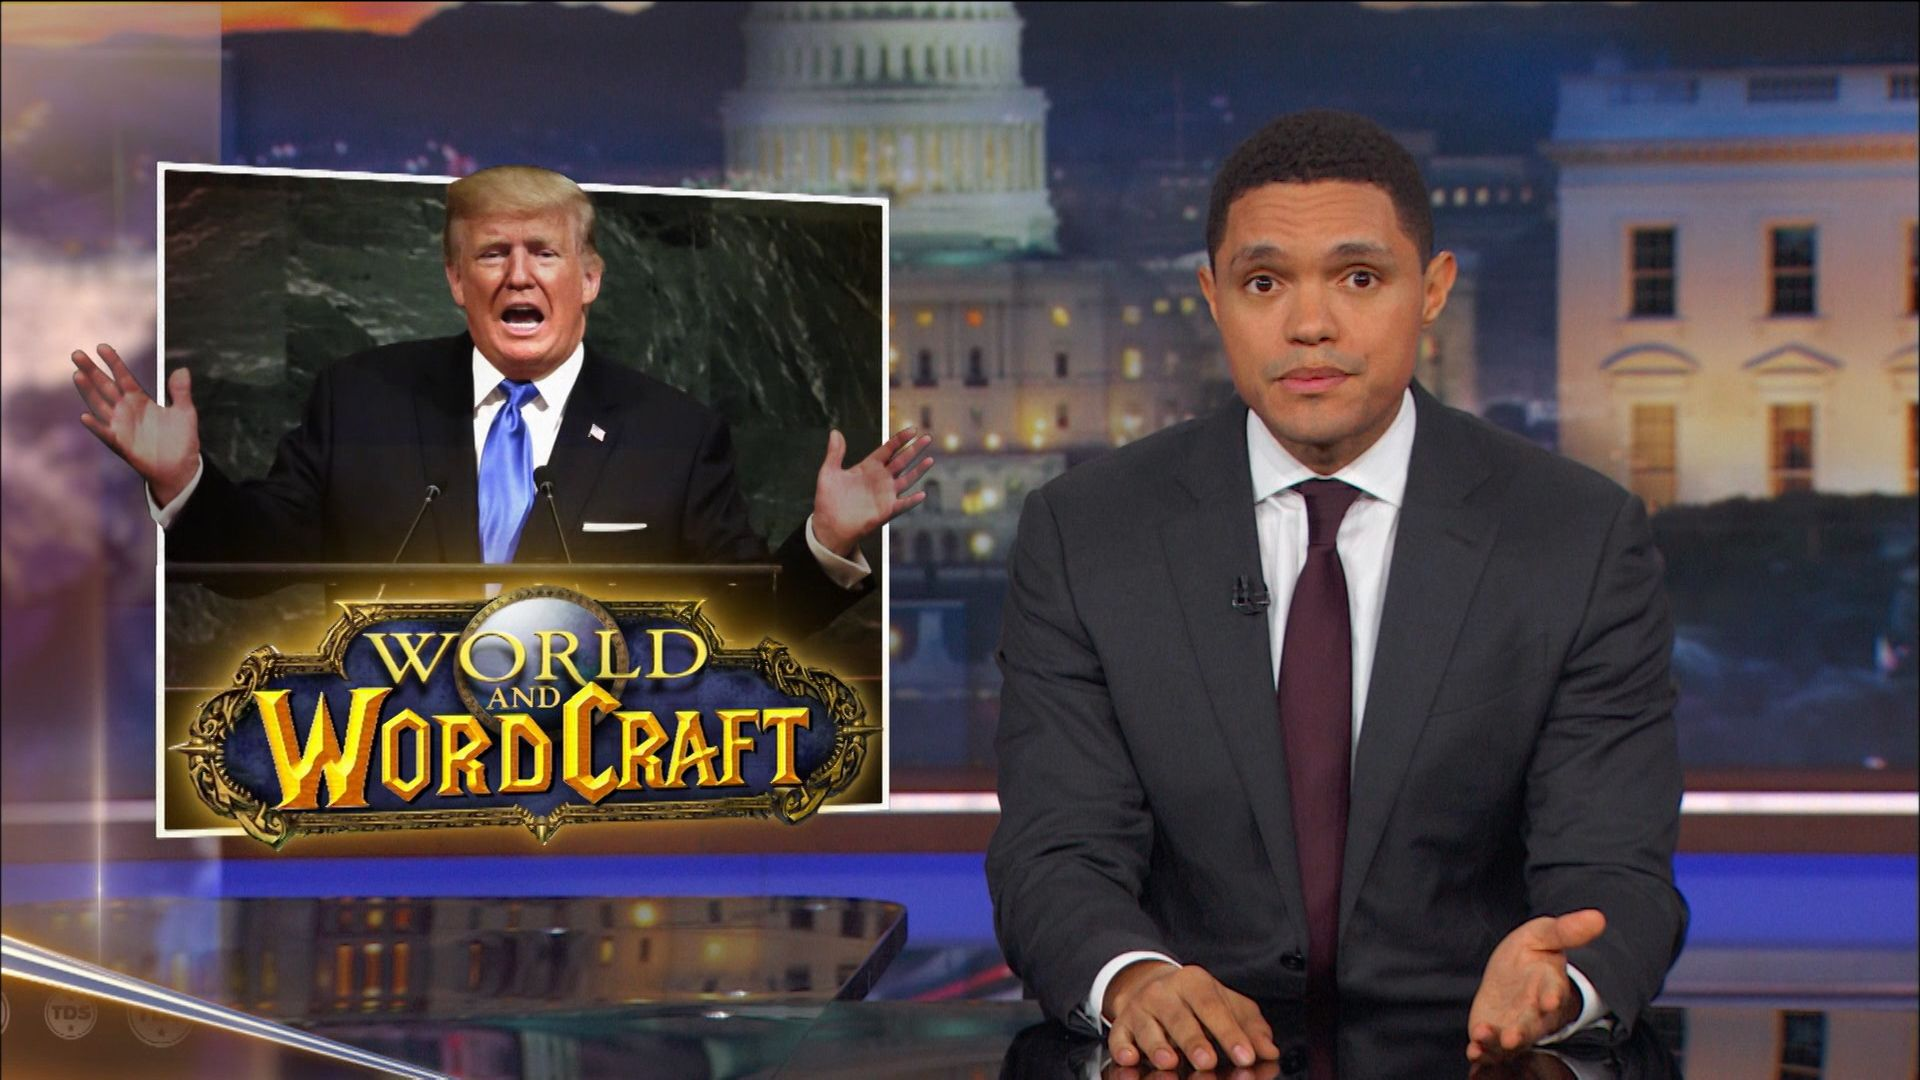 A Trumpian Debut at the United Nations - The Daily Show with Trevor Noah  (Video Clip) | Comedy Central